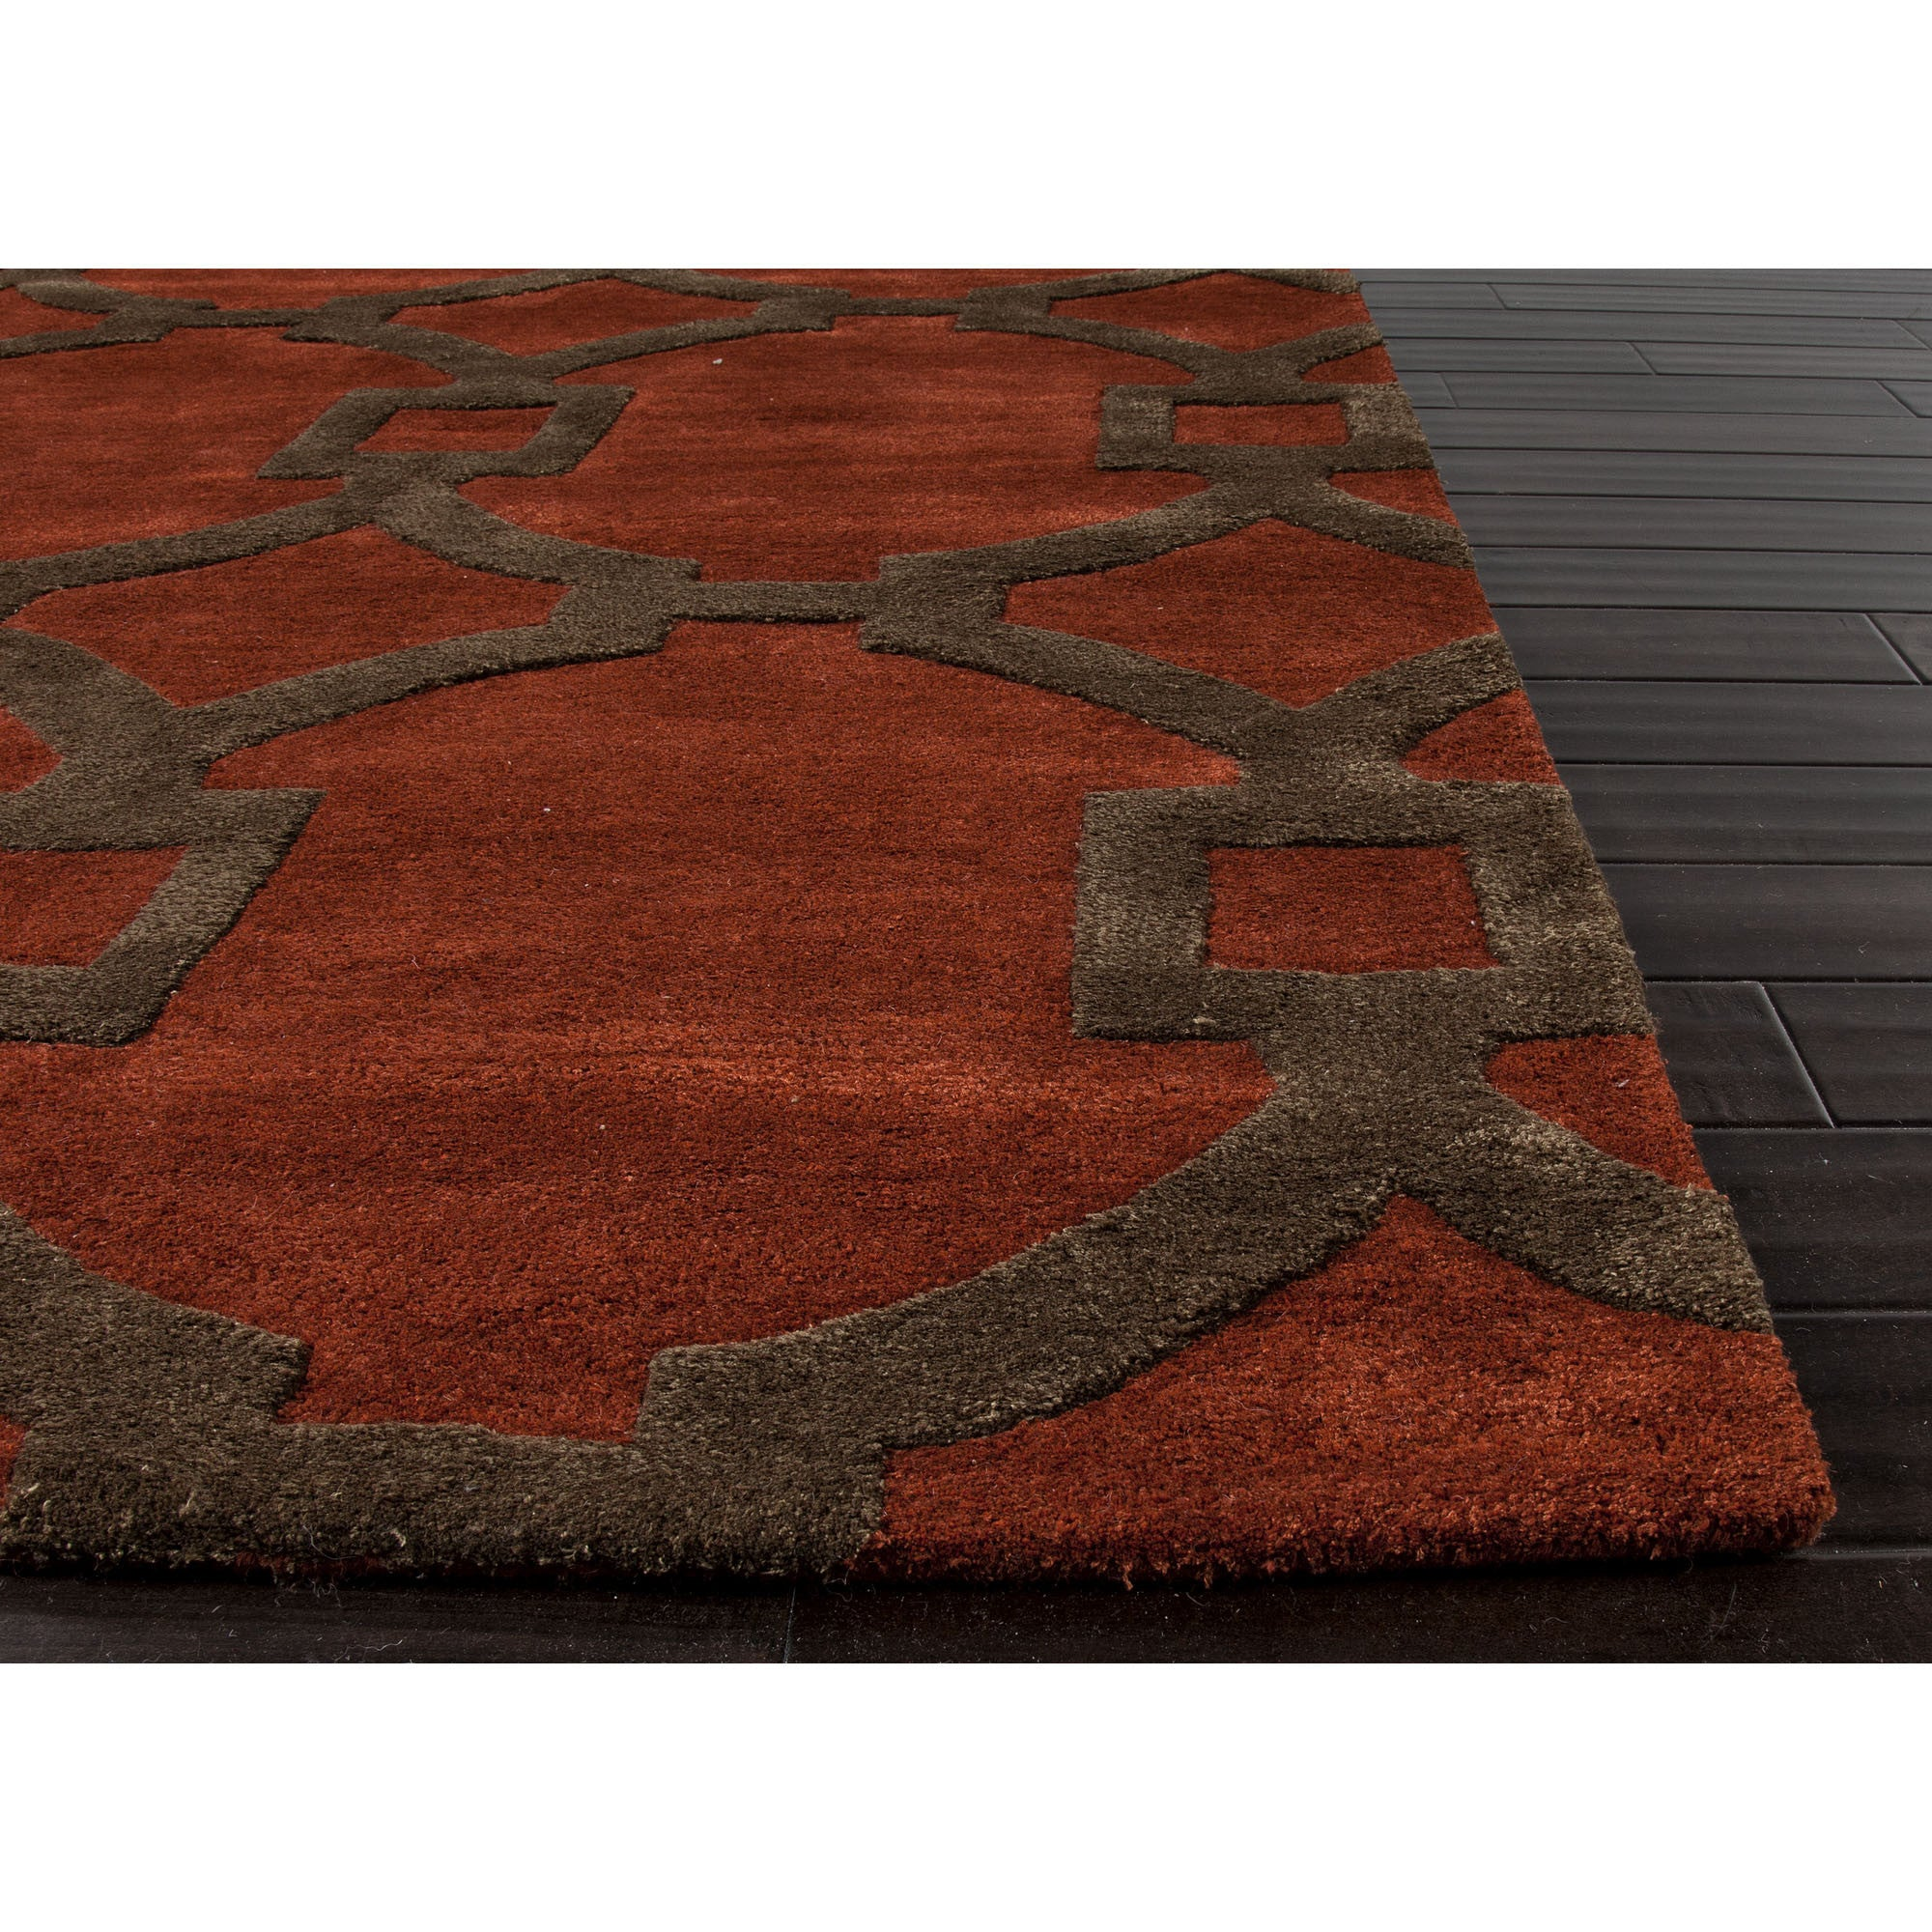 Jaipur rugs modern geometric pattern red brown wool and for Red area rugs contemporary